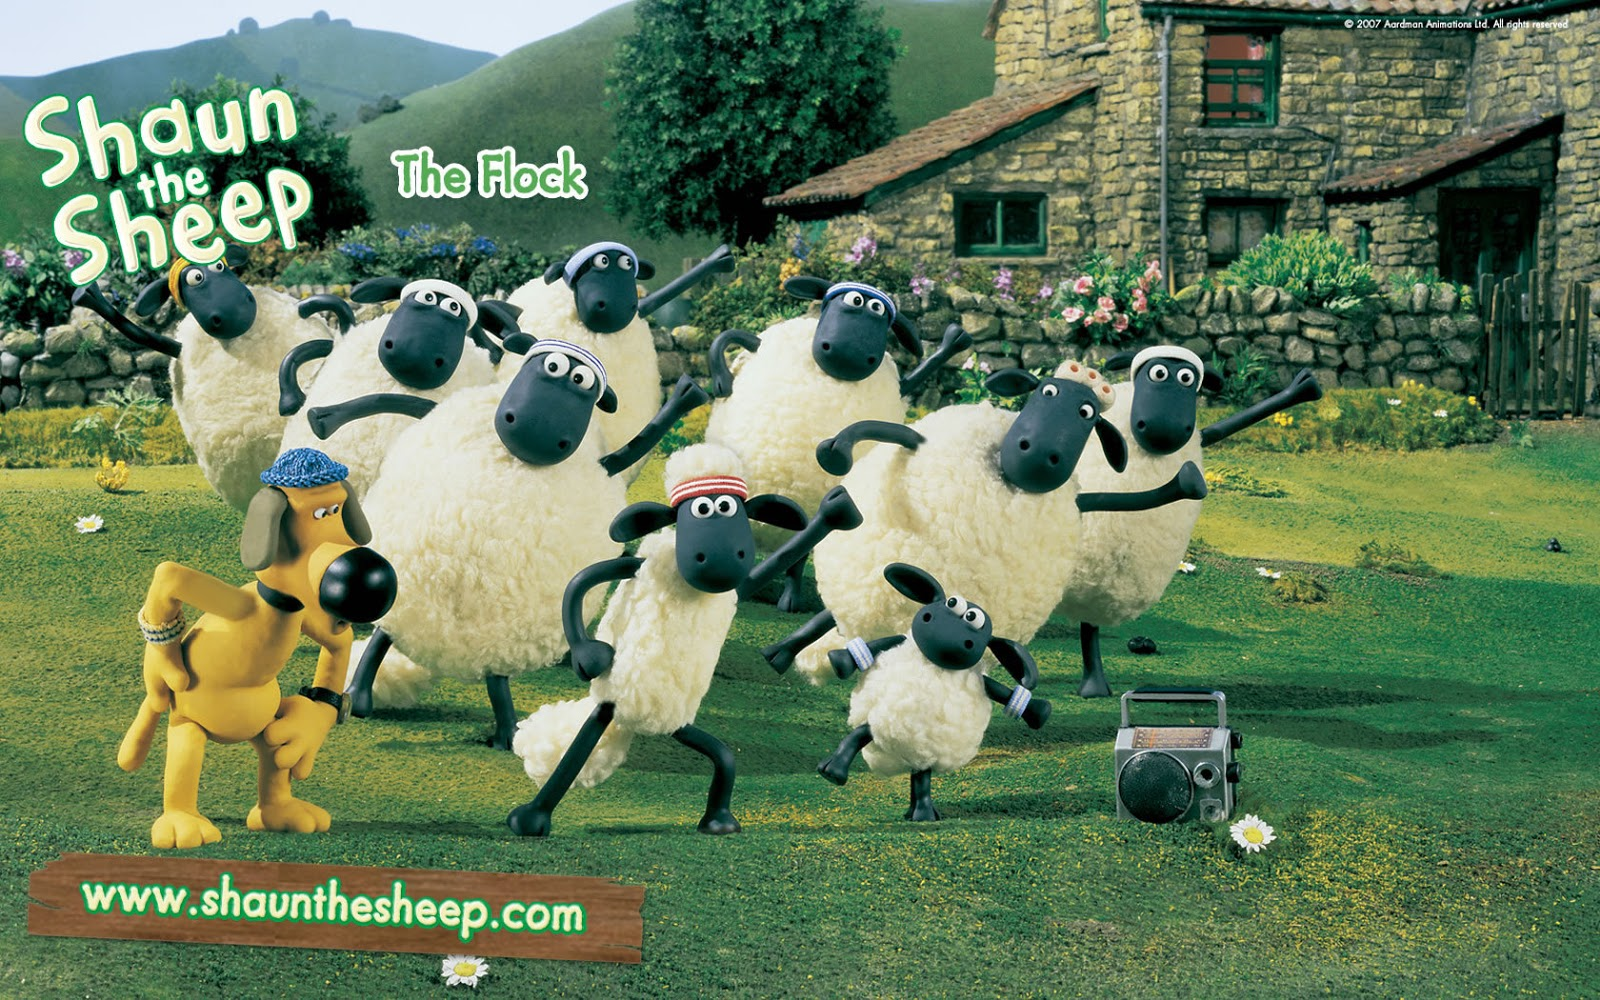 http://2.bp.blogspot.com/-wiKgtU-c-60/T37kL1uYffI/AAAAAAAAFYw/WFBJuMmjfw8/s1600/Shaun+The+Sheep+Wallpaper.jpg